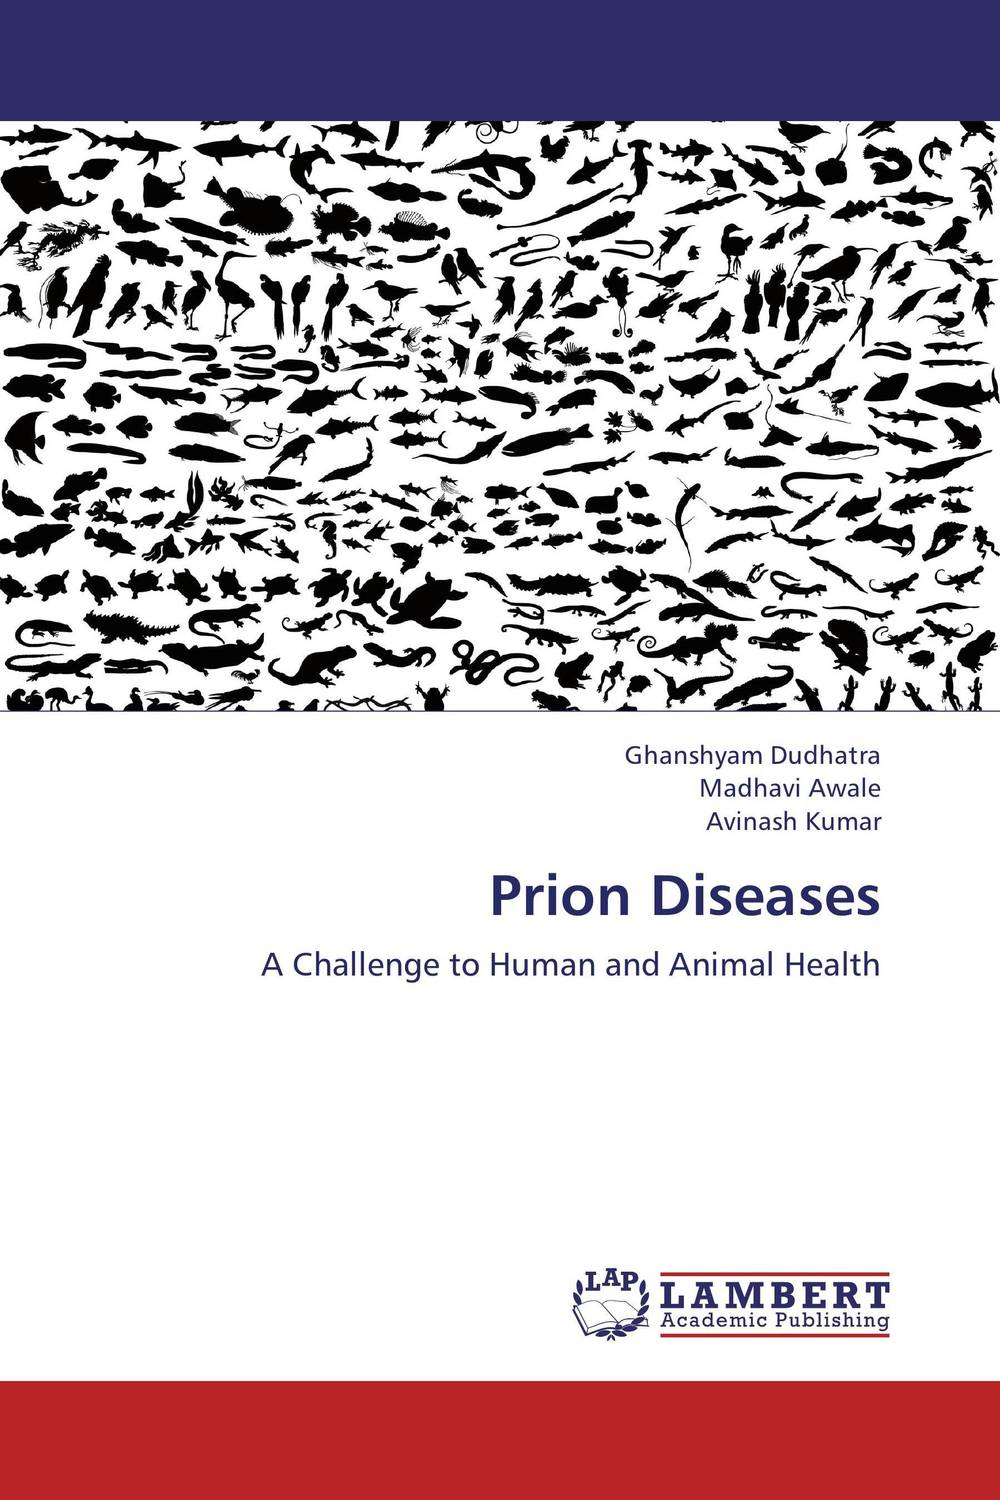 Prion Diseases franke bibliotheca cardiologica ballistocardiogra phy research and computer diagnosis